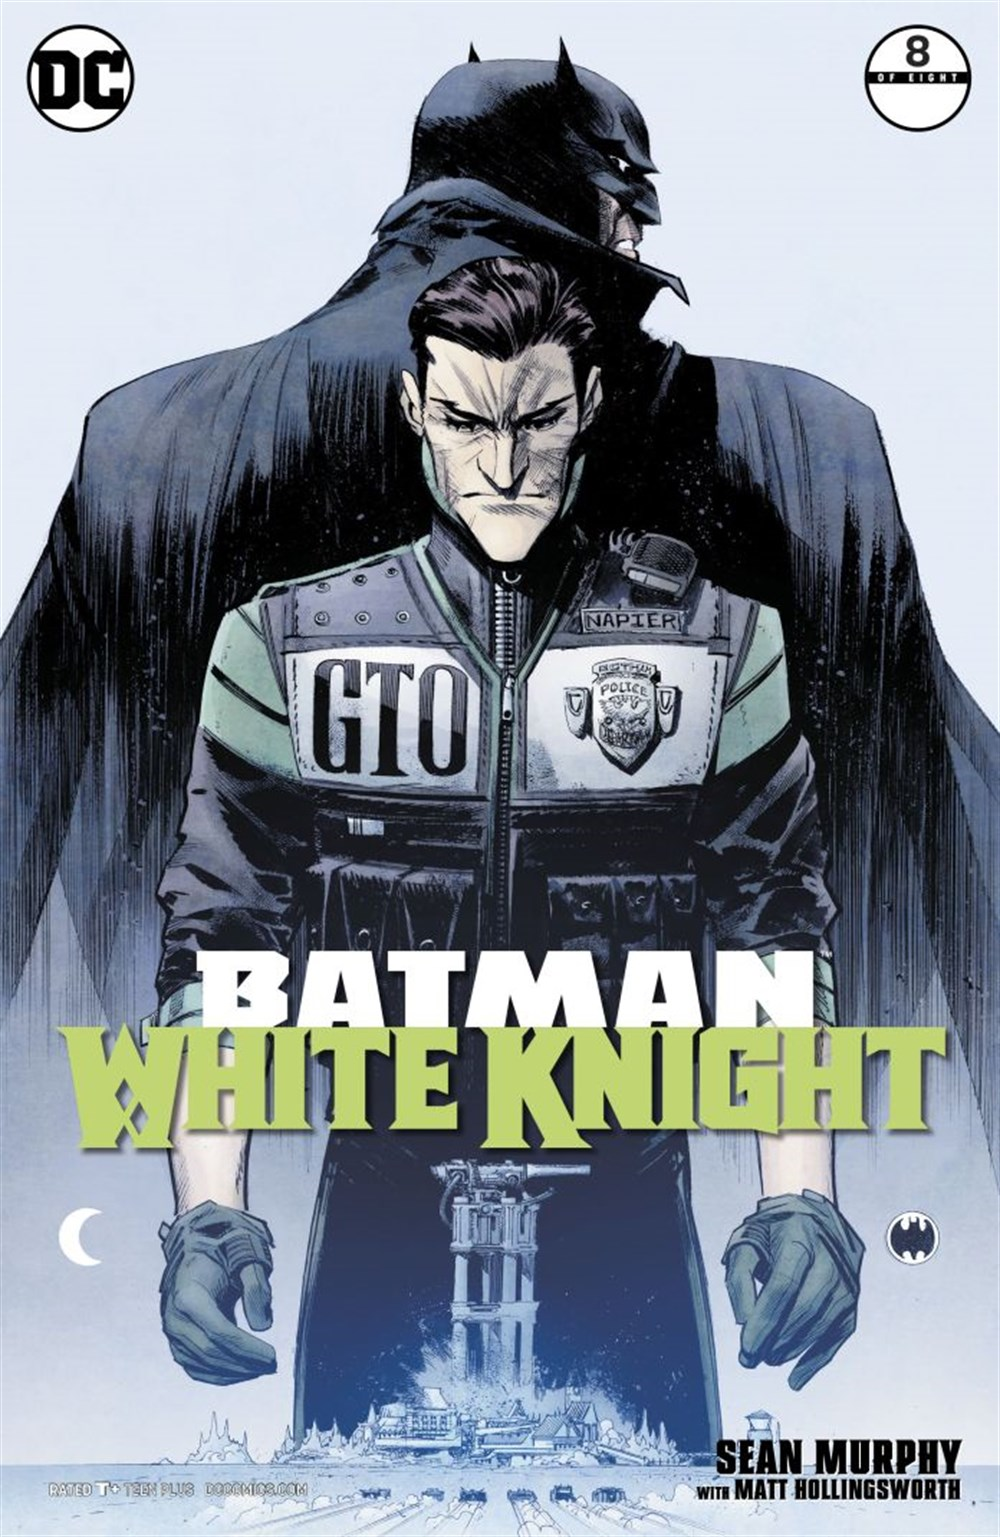 BATMAN WHITE KNIGHT #8